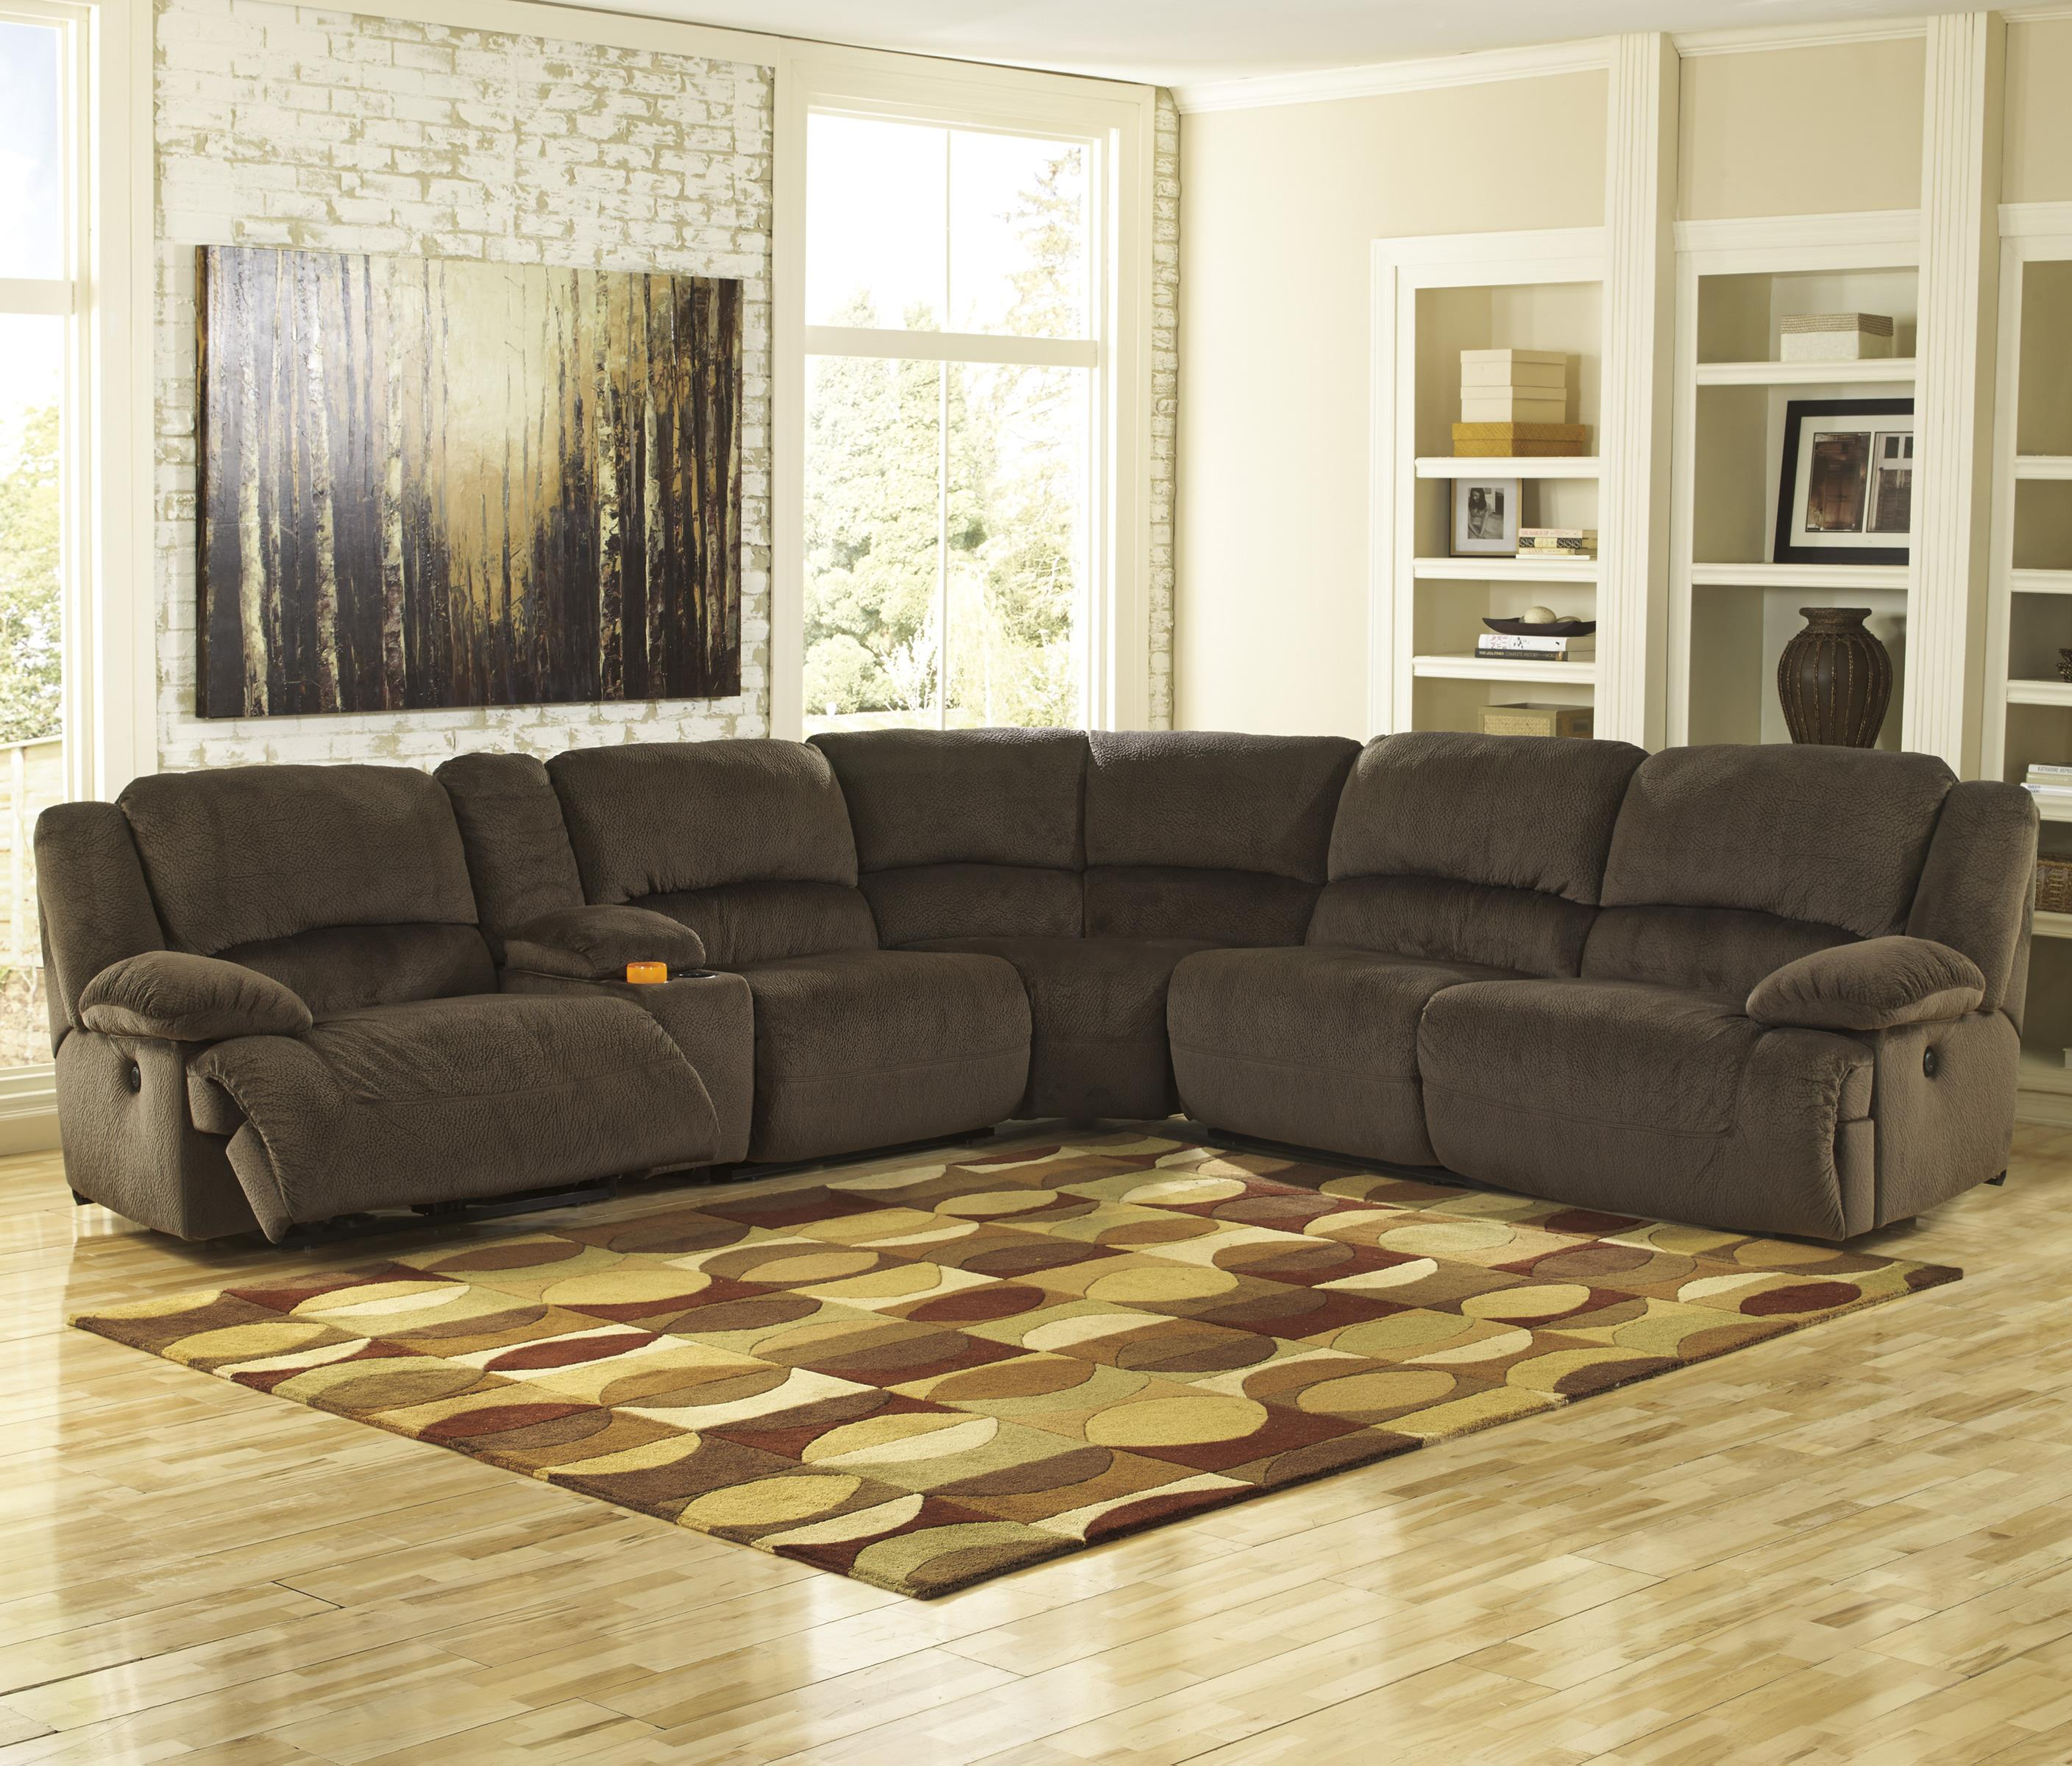 Signature Design by Ashley Toletta - Chocolate Power Reclining Sectional with Console - Item Number: 5670158+57+2x46+77+62